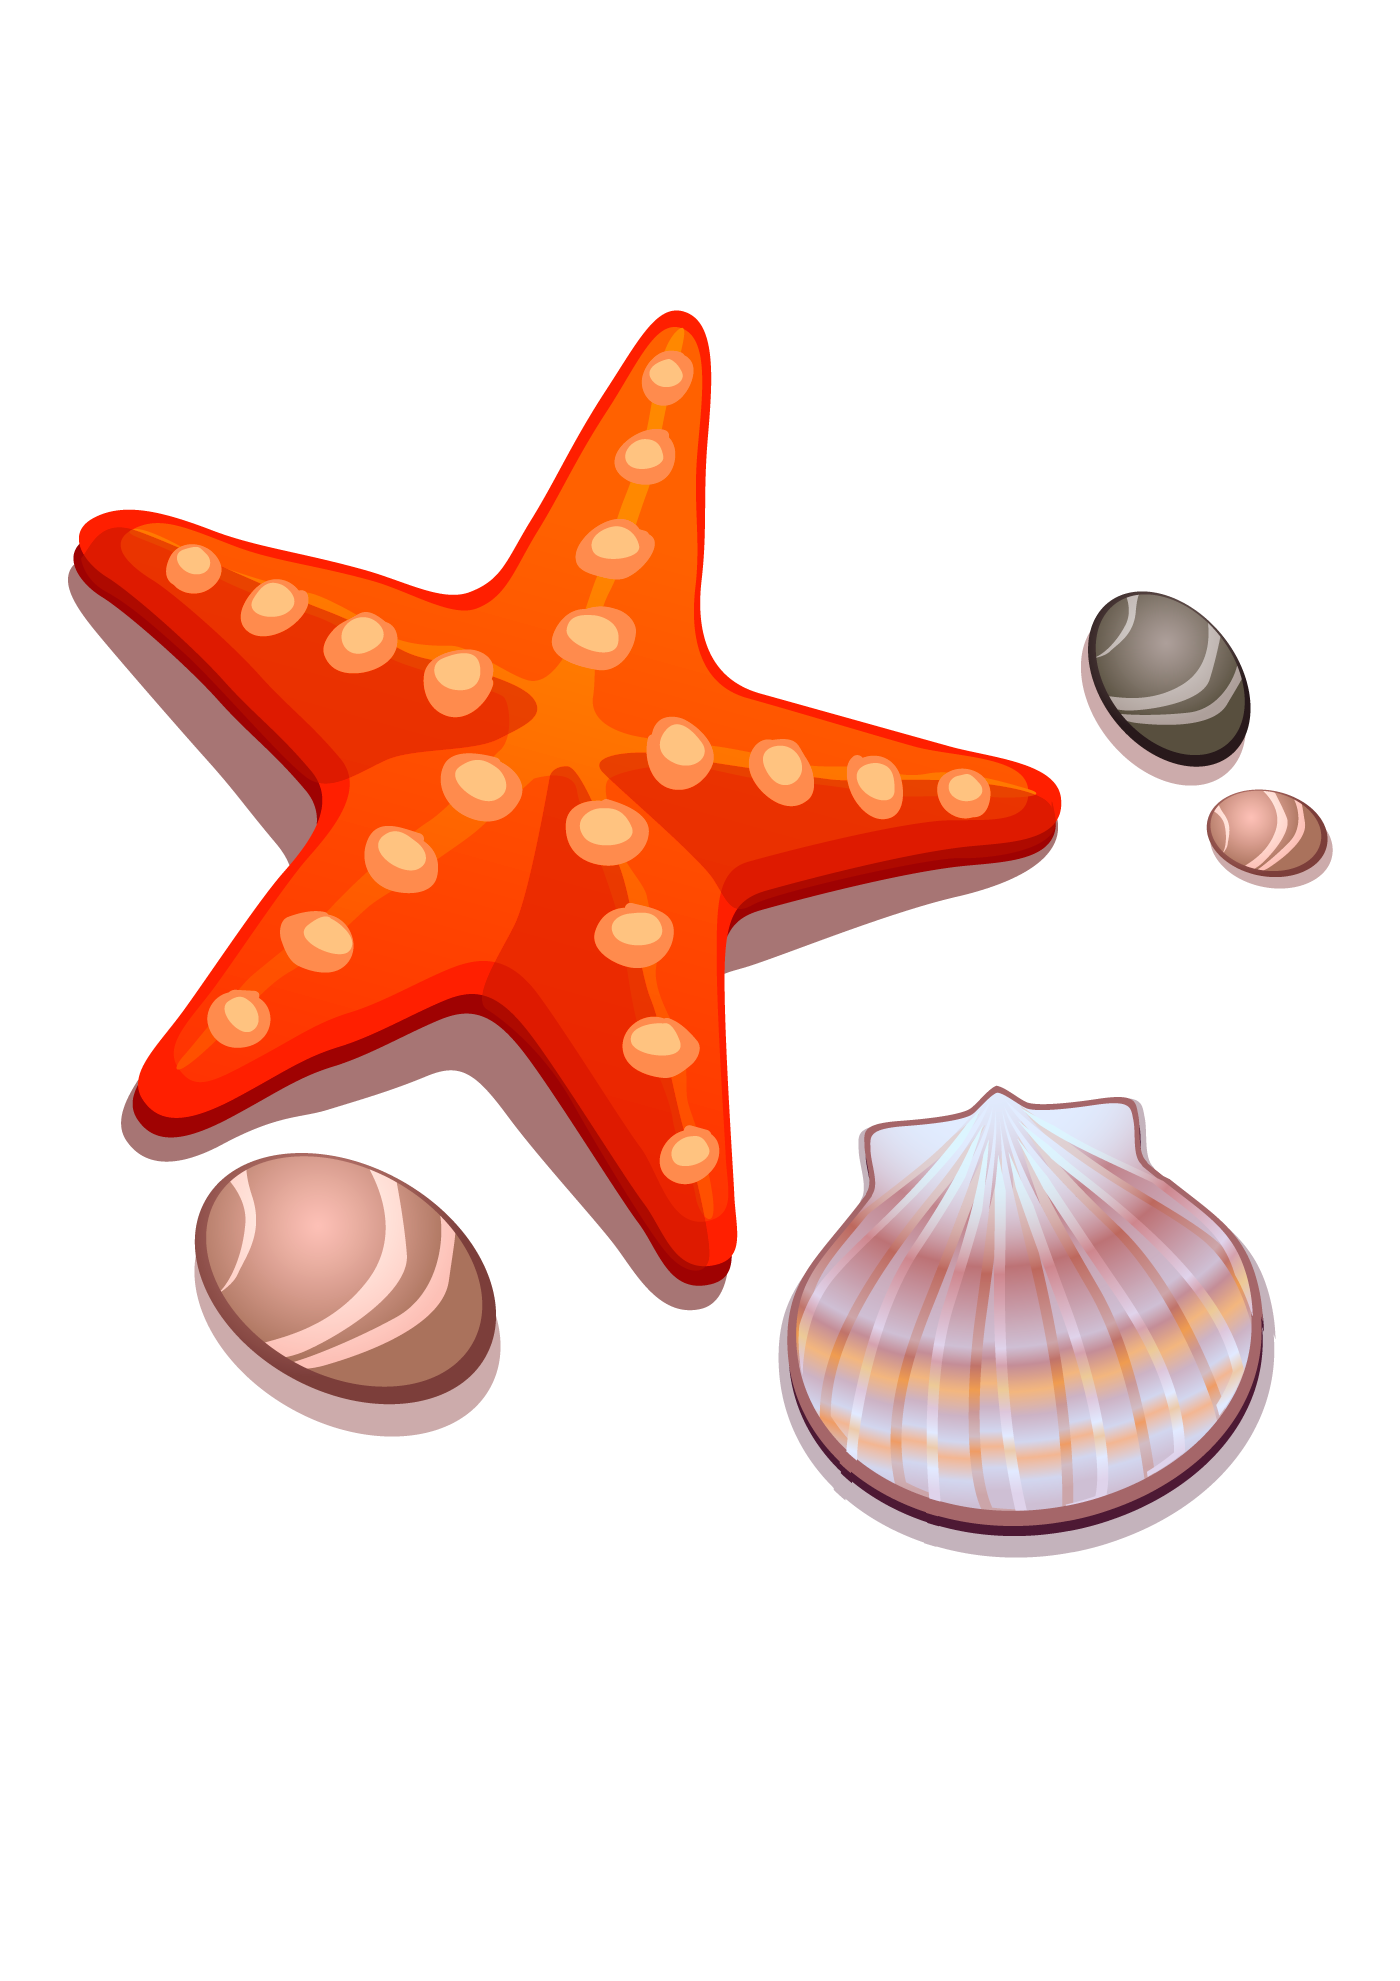 Drawing shells starfish. Cartoon seashell and transprent